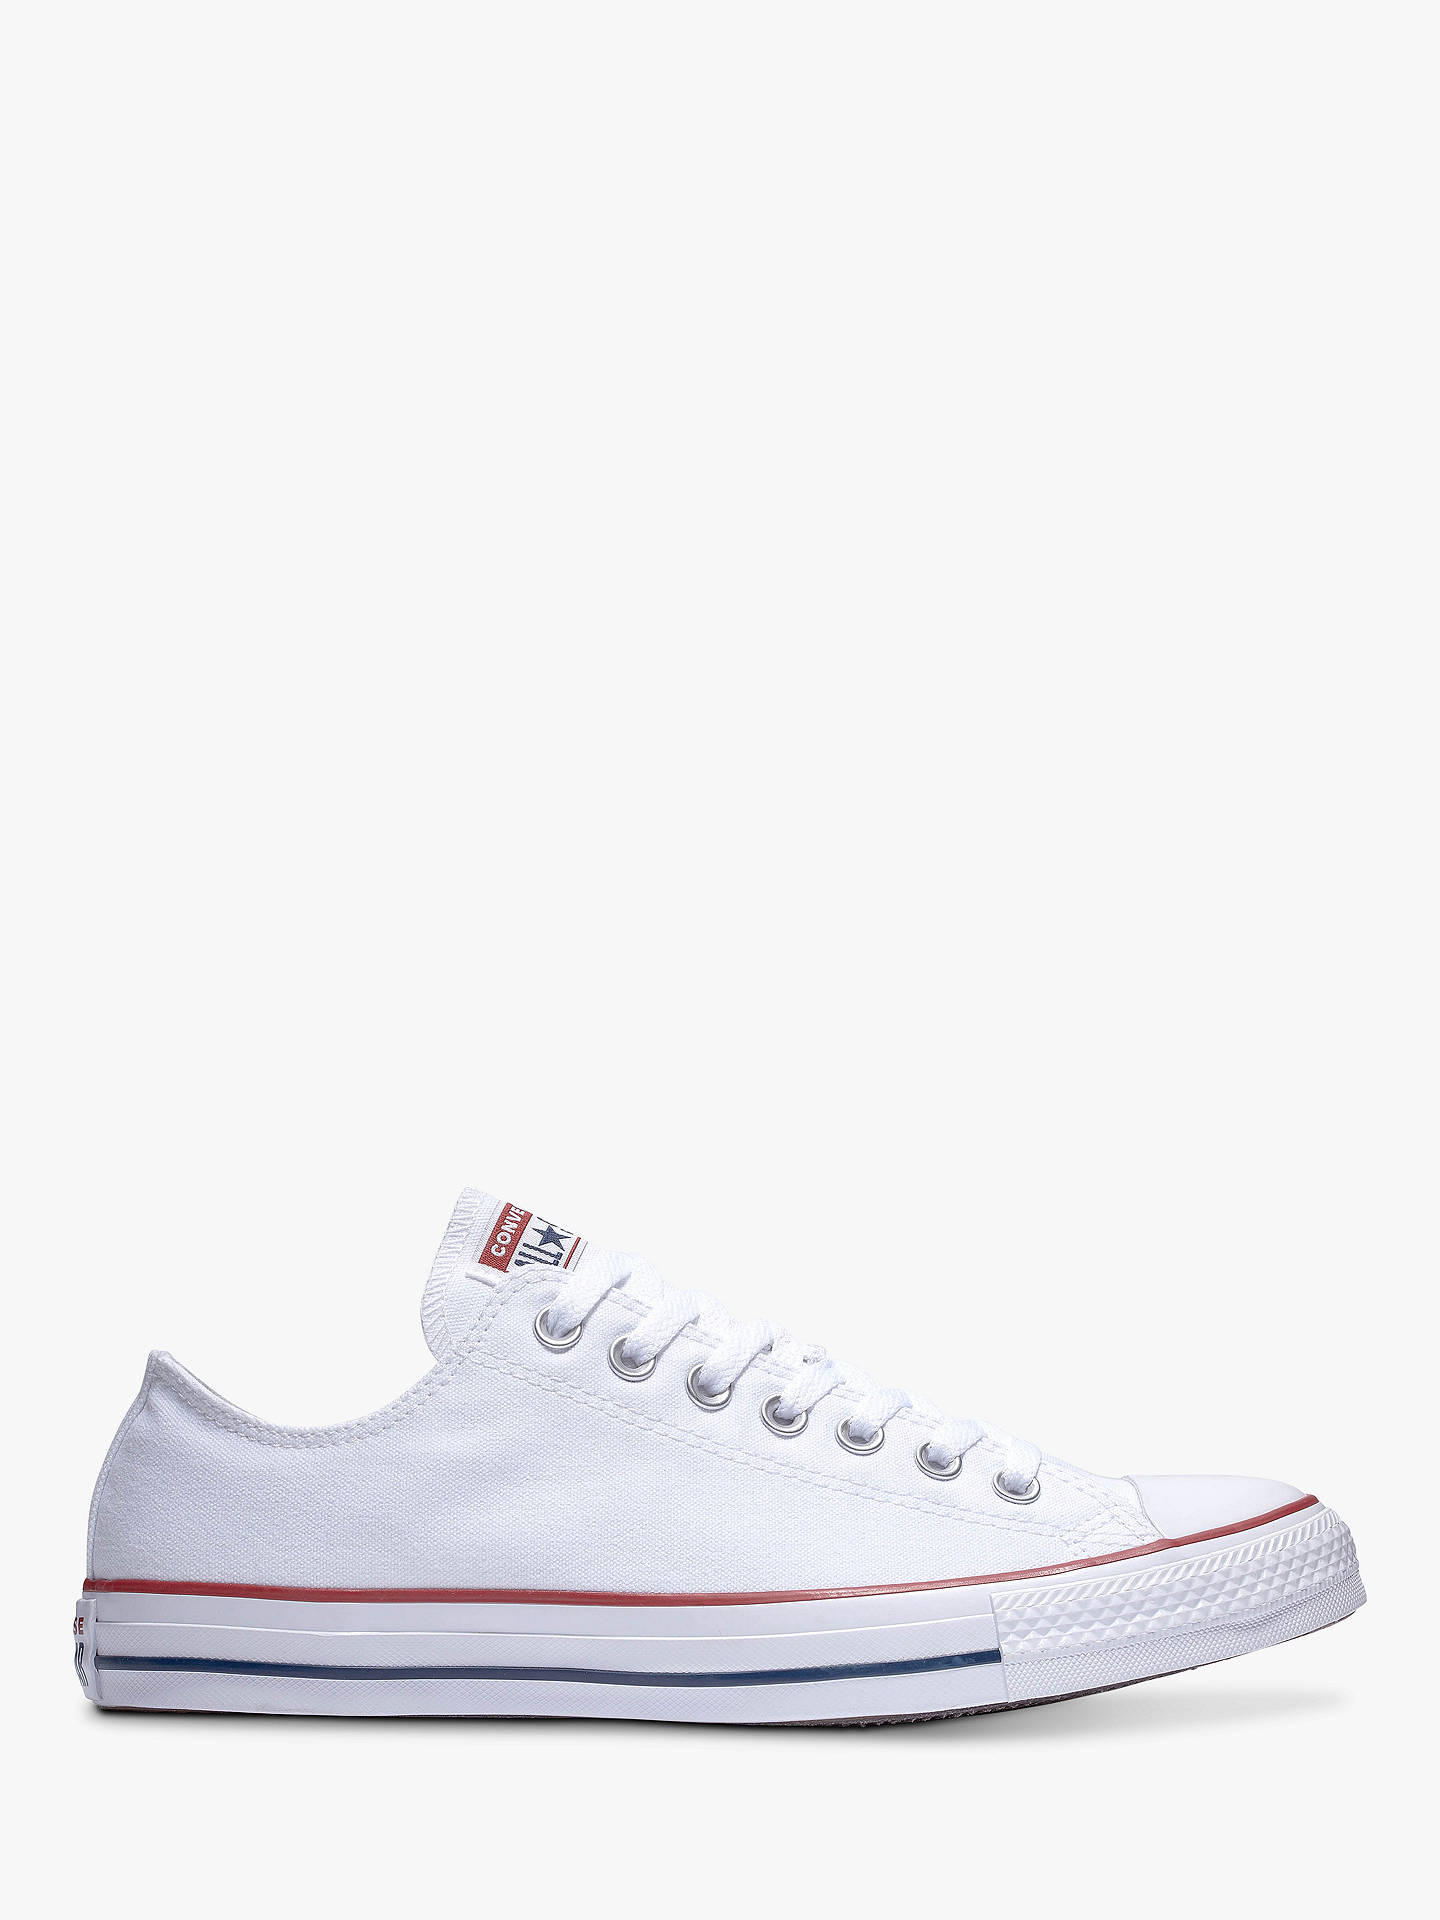 79126365ce0e Converse Chuck Taylor All Star Canvas Ox Low-Top Trainers at John ...